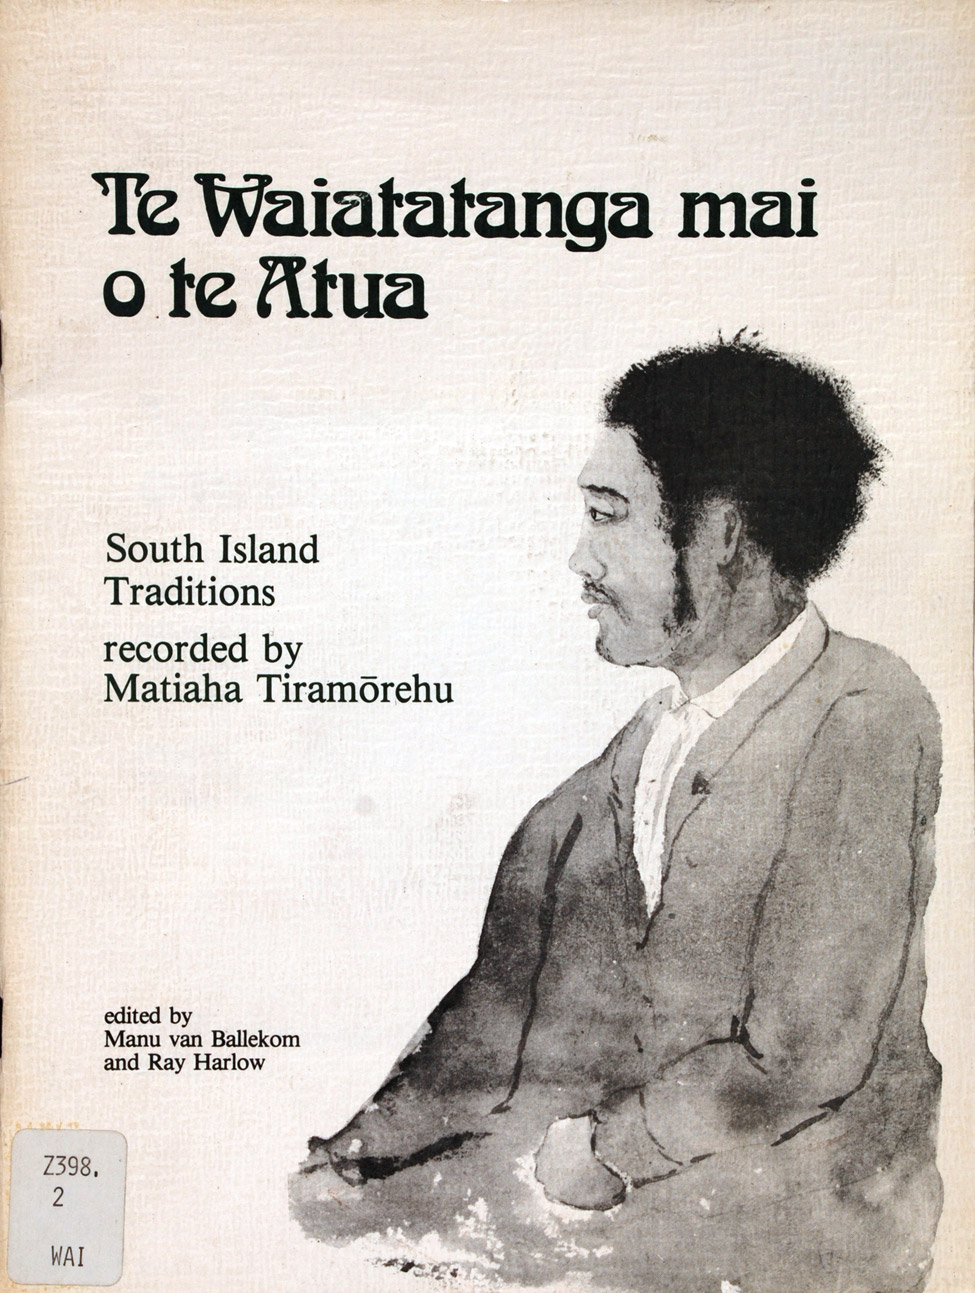 Manu van Ballekom and Ray Harlow (eds.). <i>Te Waiatatanga mai o te Atua: South Island Traditions recorded by Matiaha Tiramōrehu</i>. Christchurch: Department of Maori, University of Canterbury, 1987.